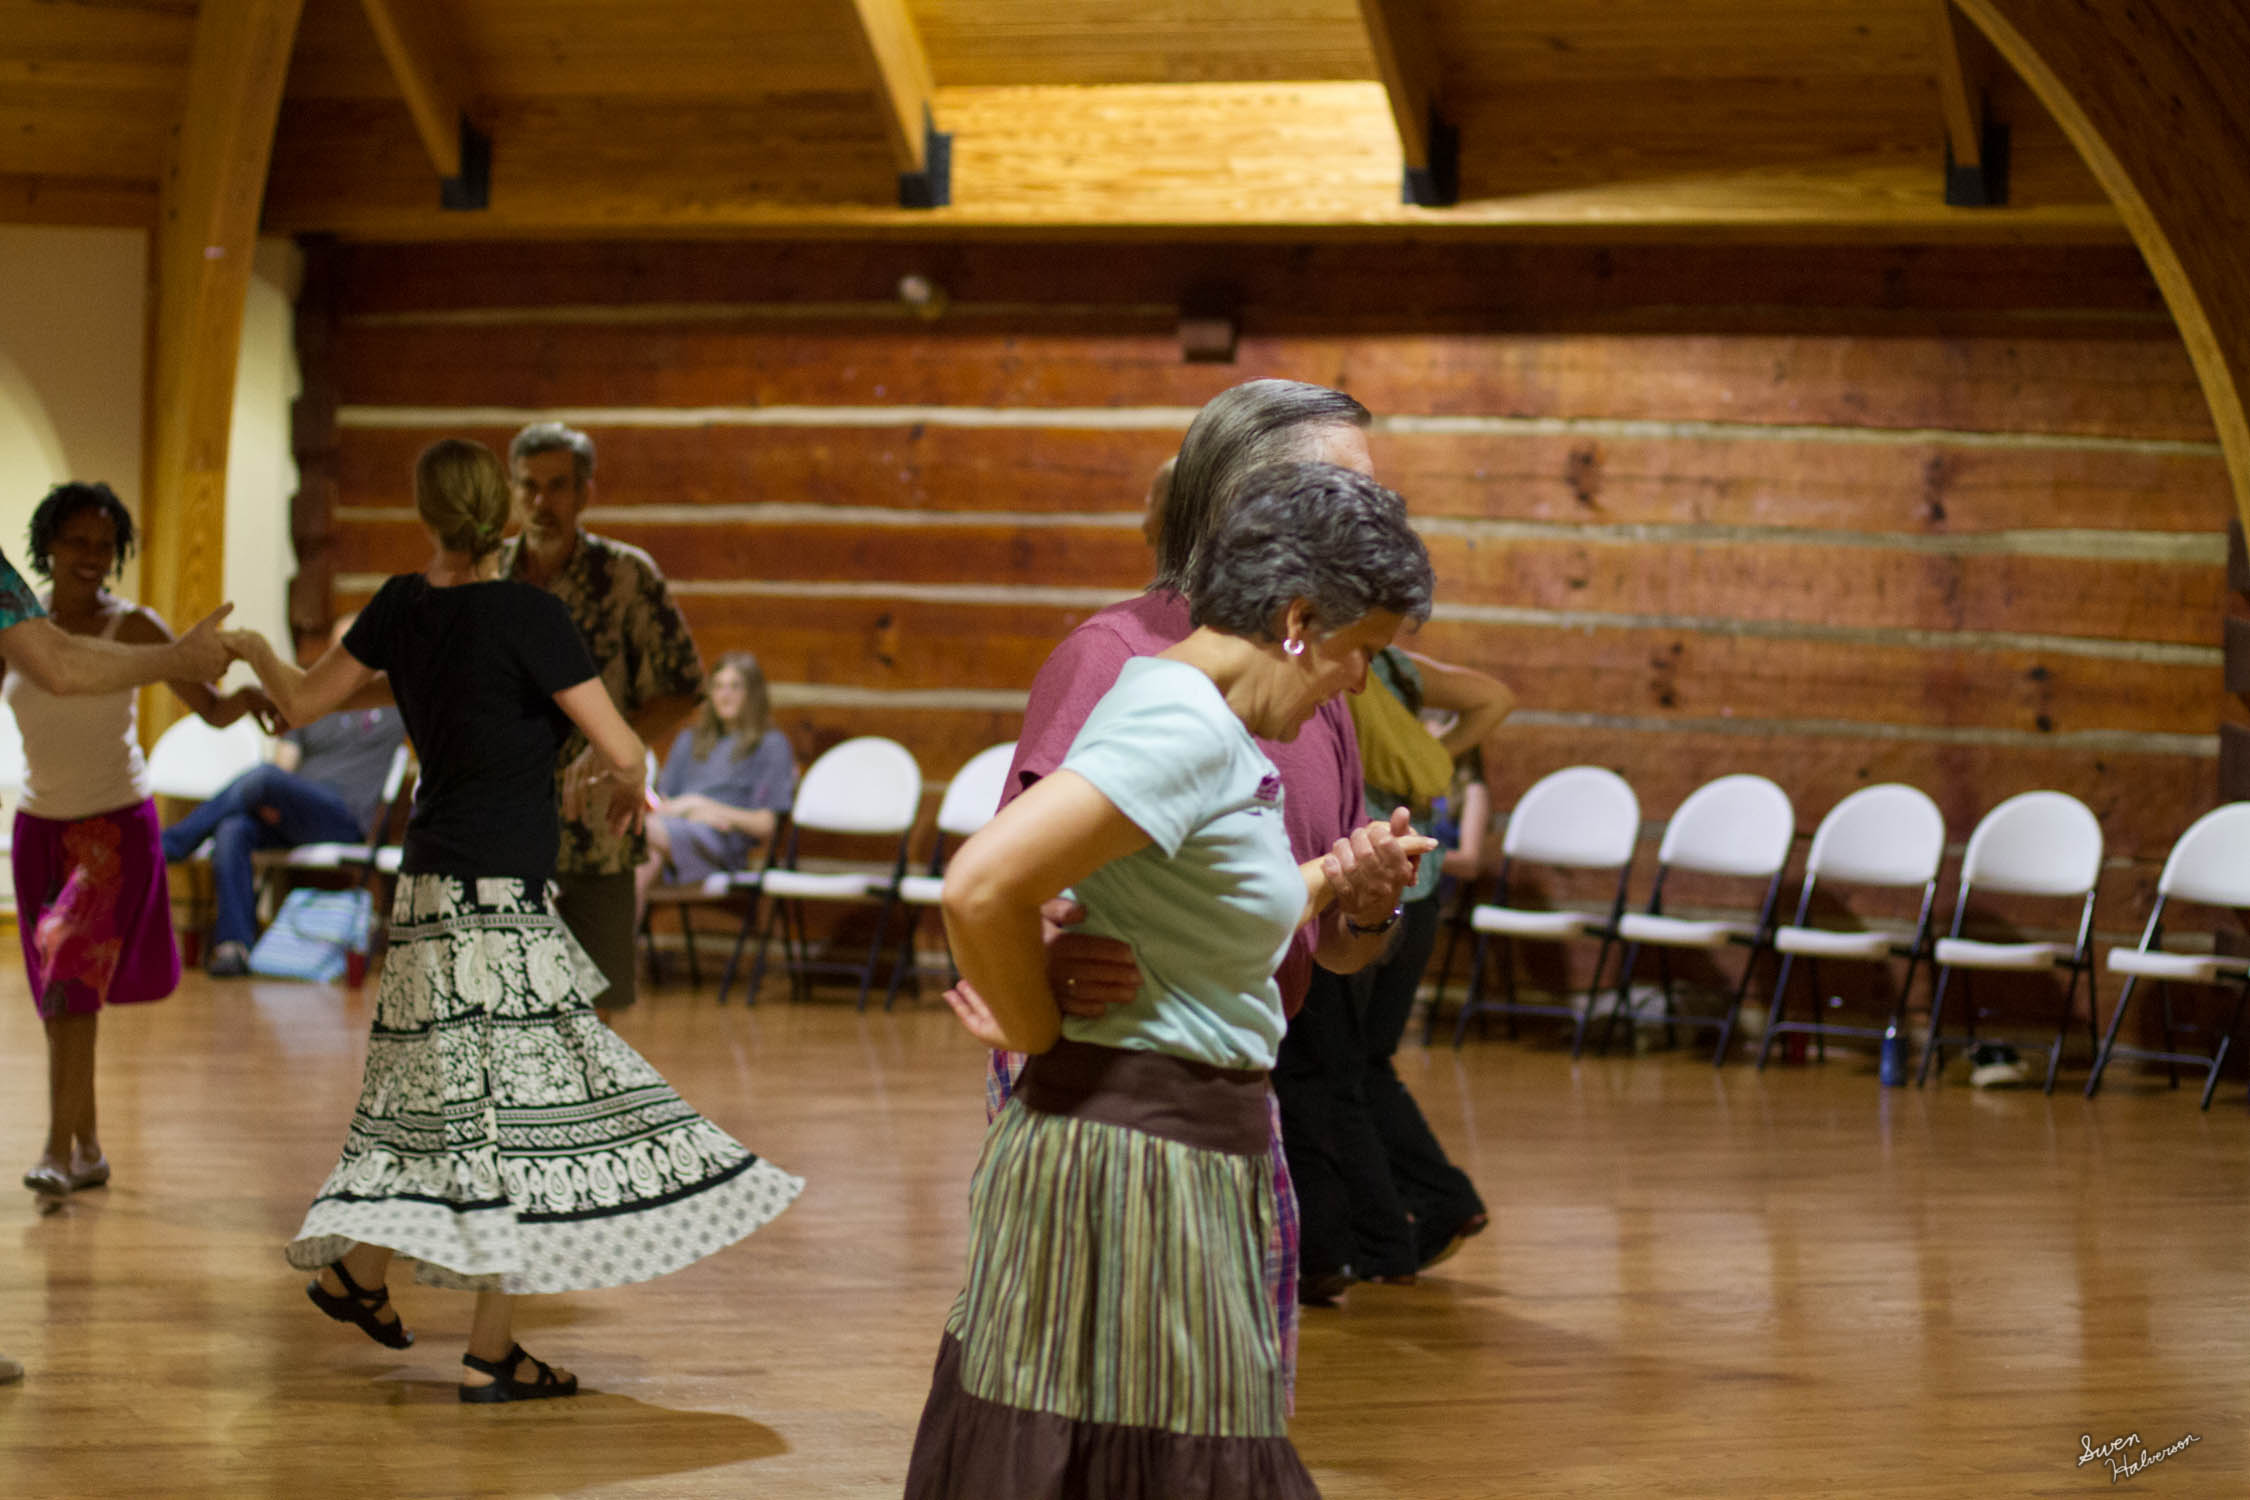 Contra dancing in Berea-006.jpg